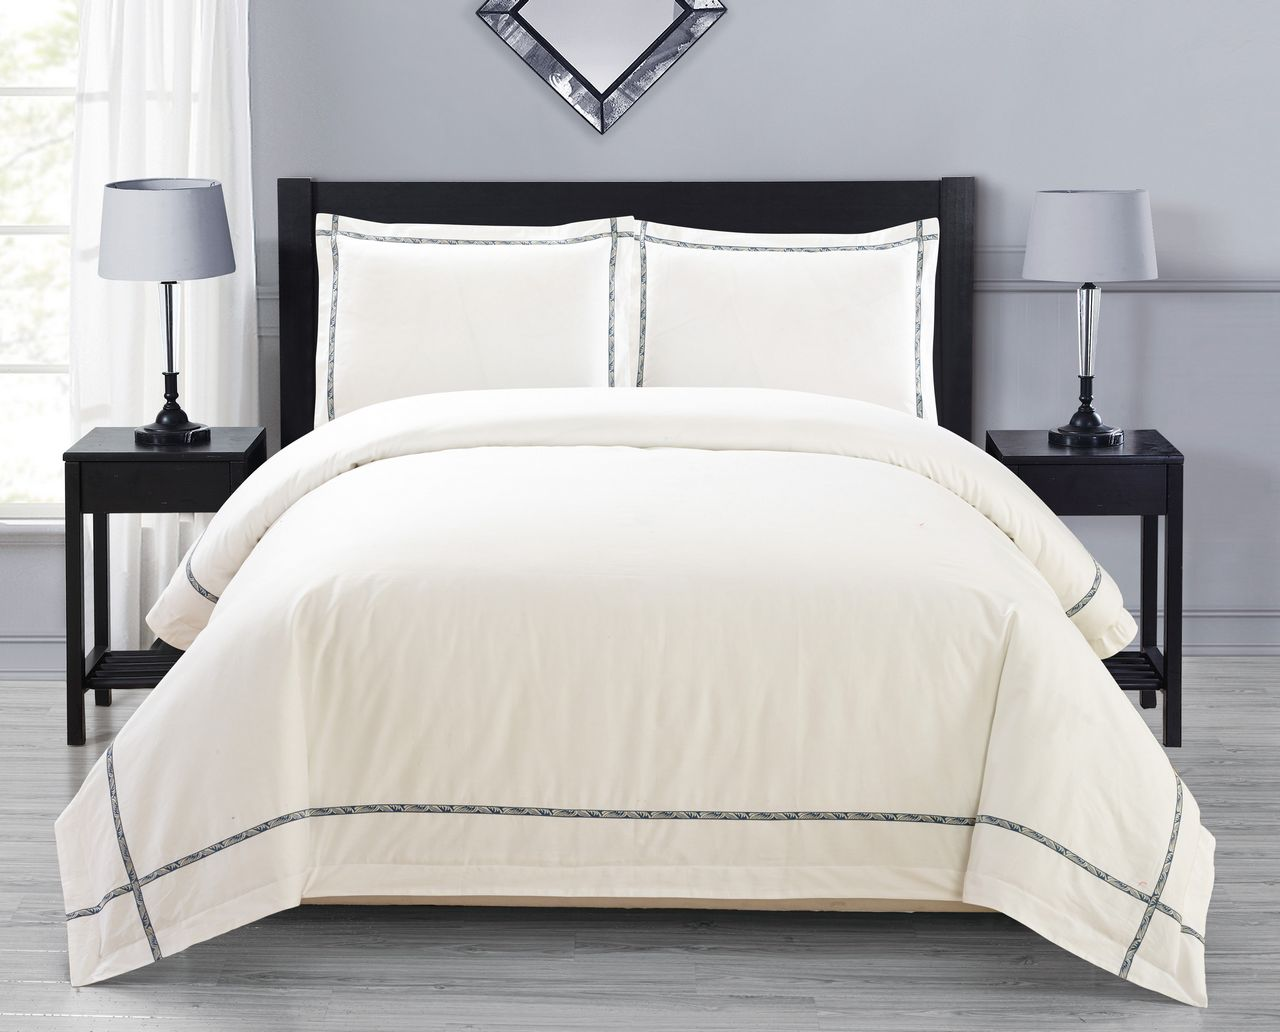 Evan 300 Thread Count Cotton Duvet Cover Set